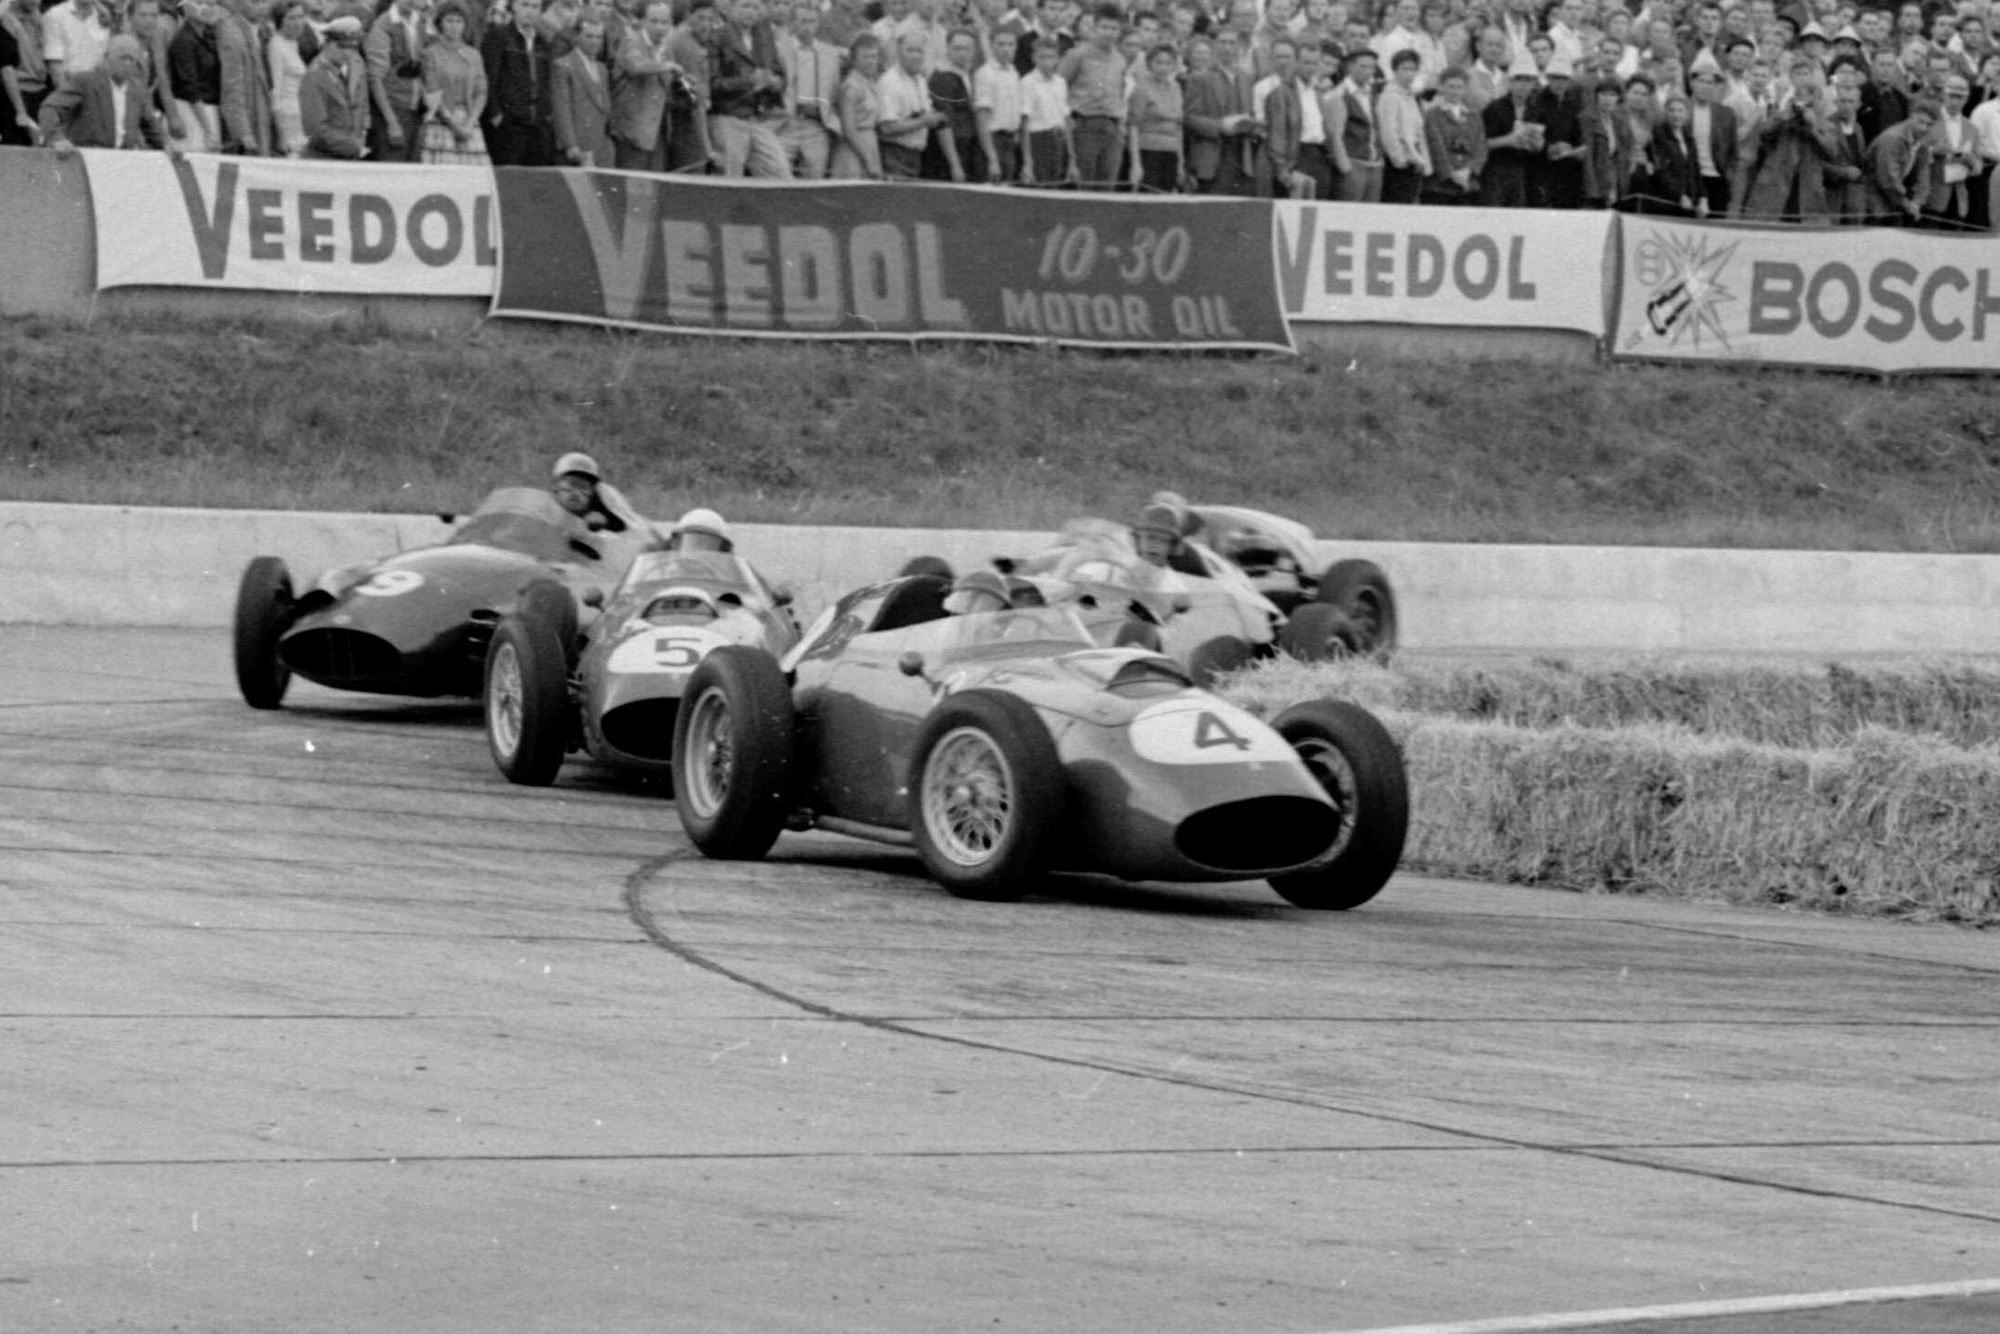 Stirling Moss leads Maurice Trintignant both in Cooper T51 Climaxs and Carroll Shelby in an Aston Martin DBR4/250 into the hairpin.